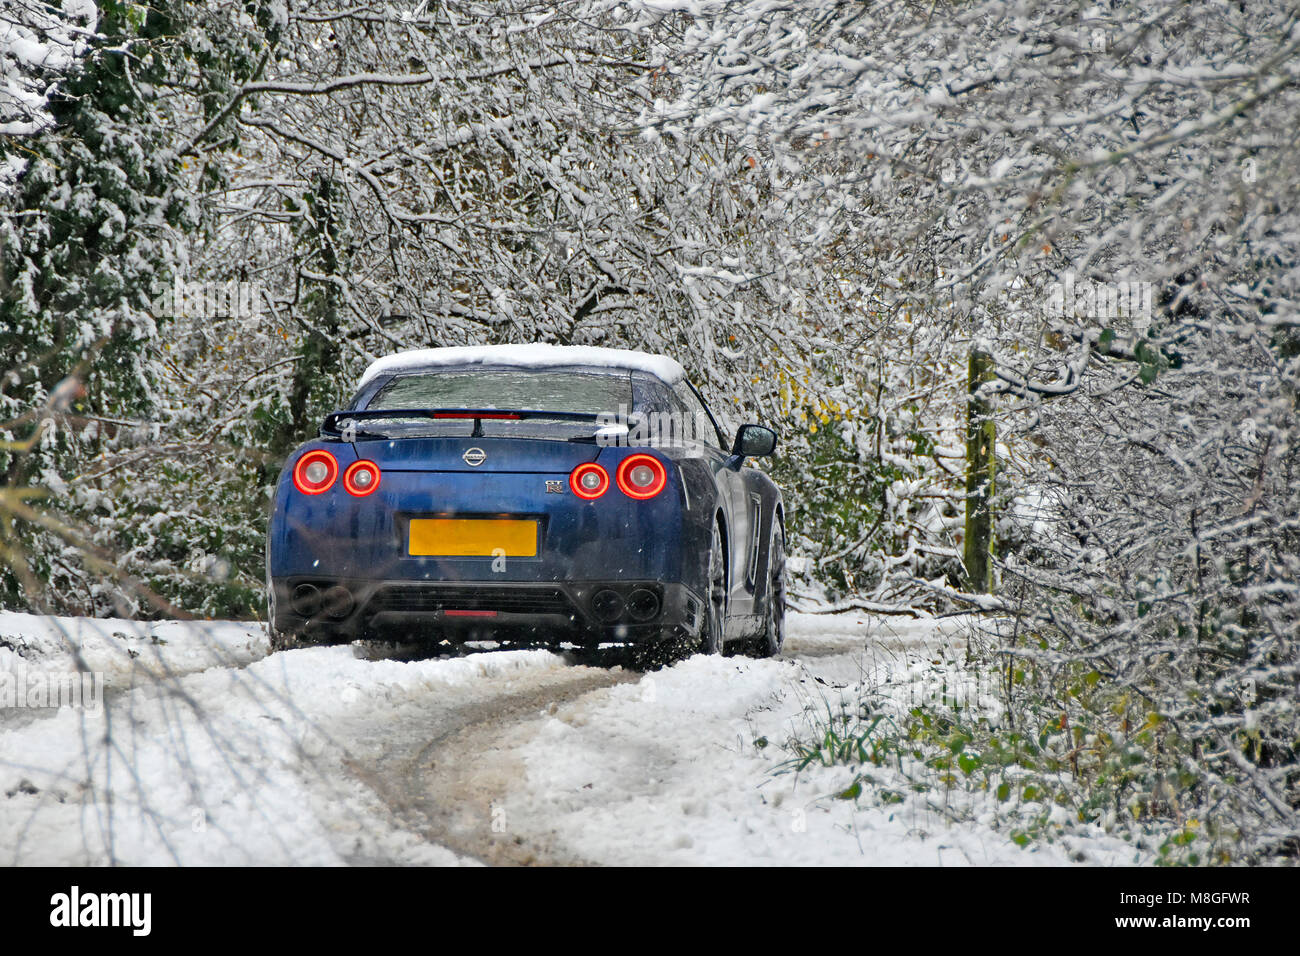 Snowy tree landscape scene driving car in narrow road way down country lane covered in winter snow fall rural home - Stock Image